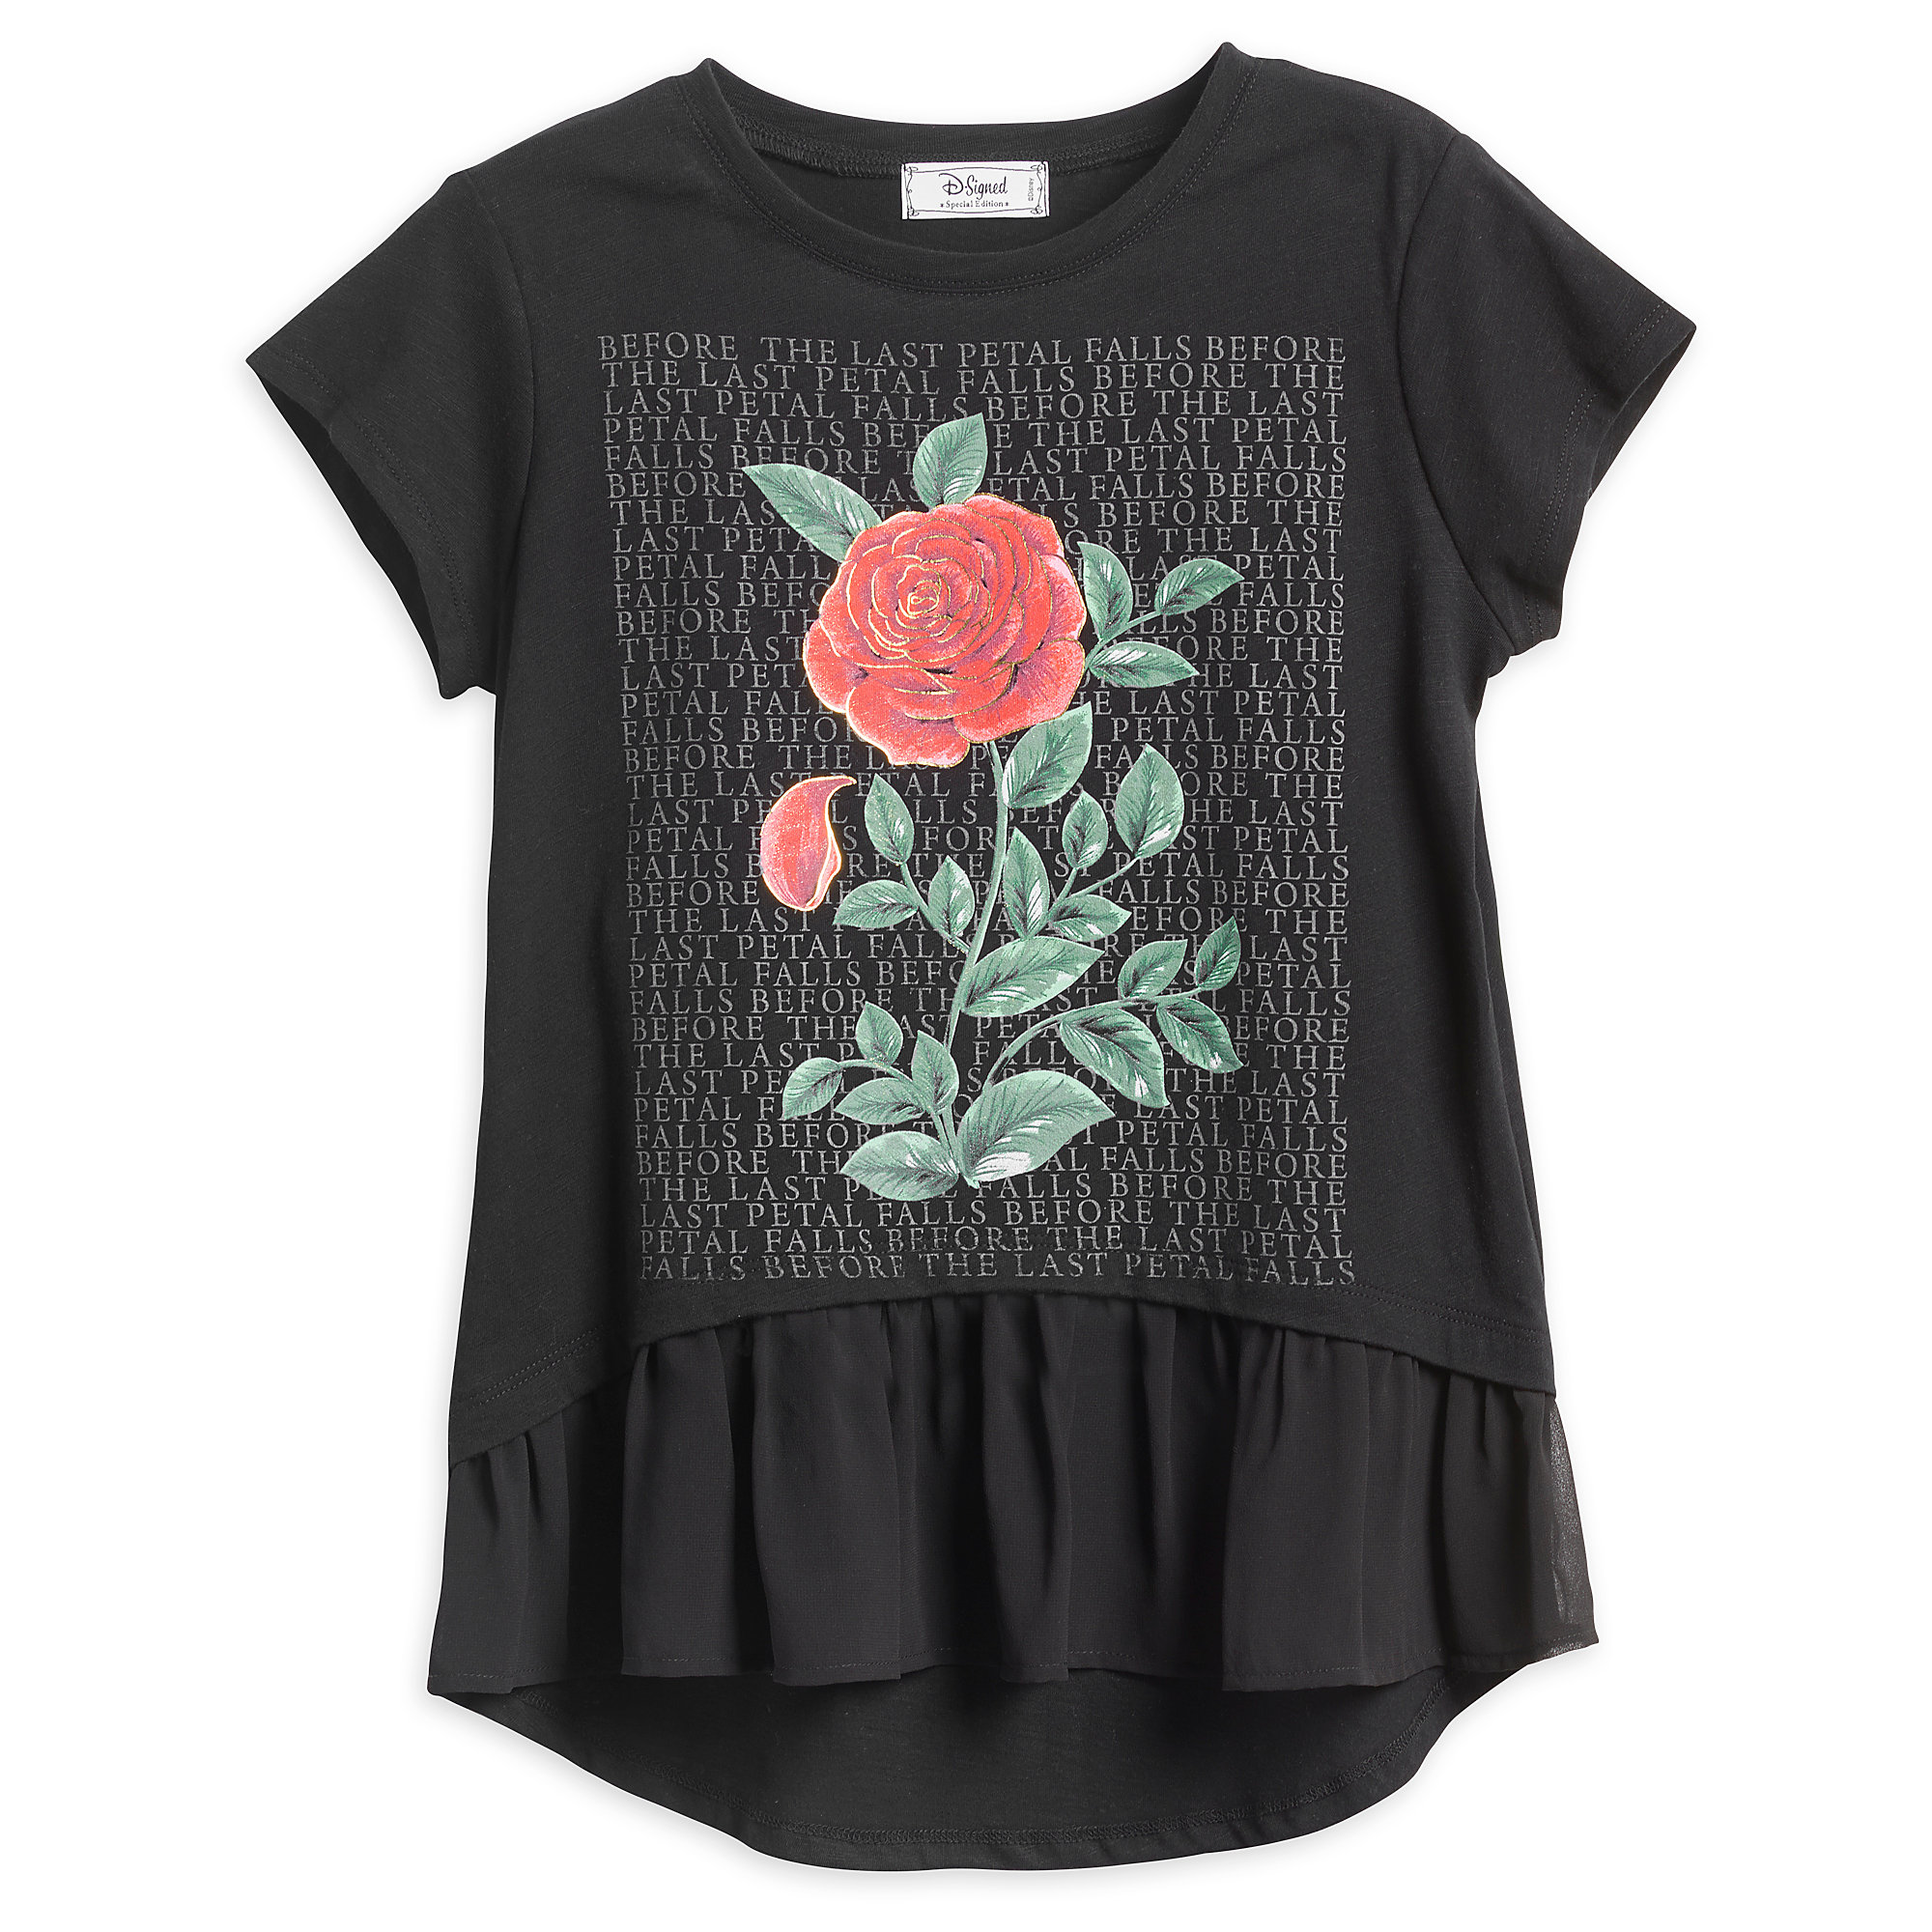 Beauty and the Beast Rose Top for Tweens